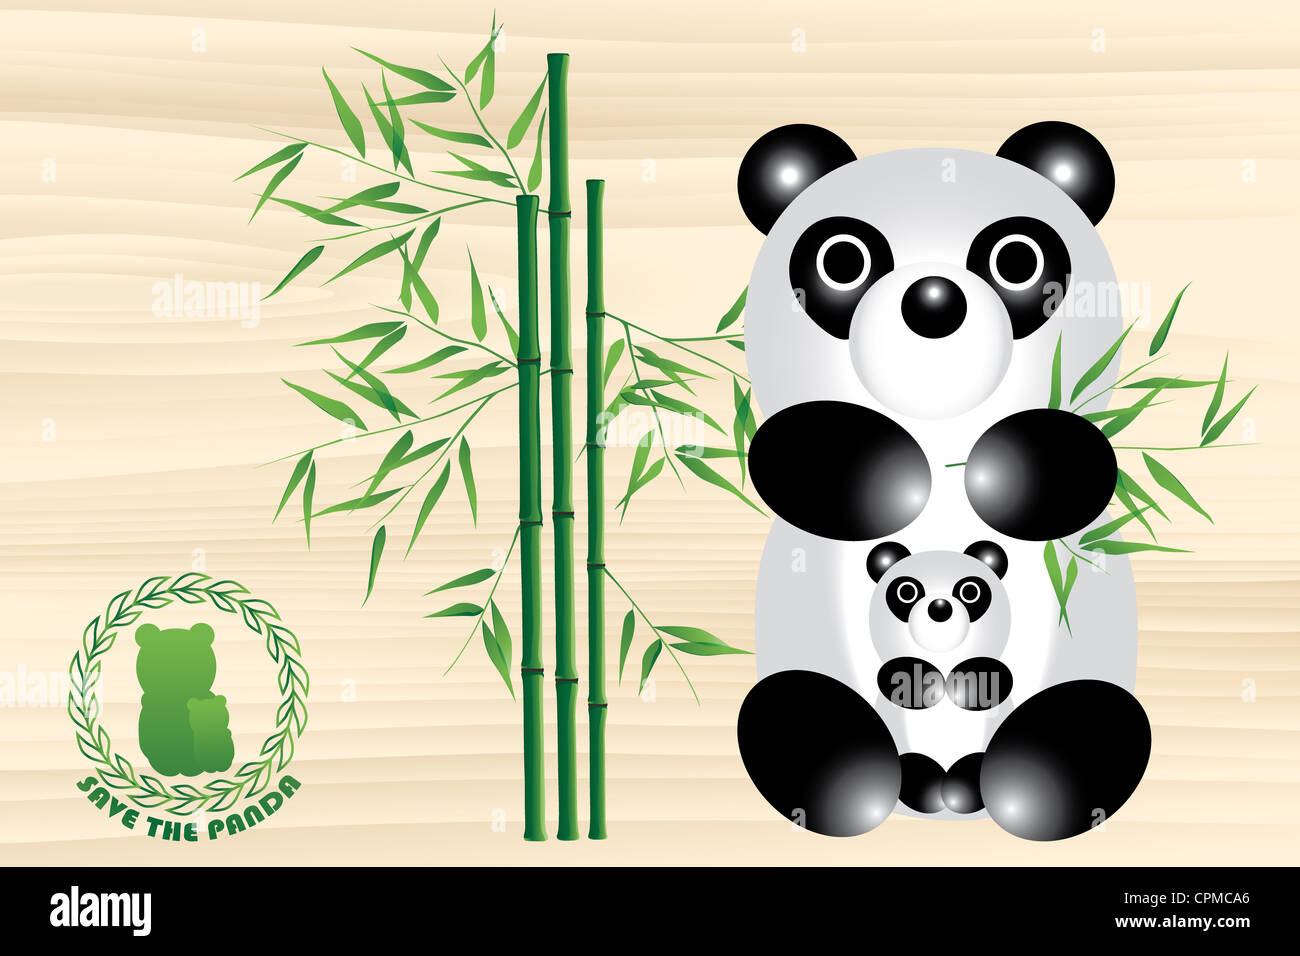 panda bear illustration with logo and bamboo save the panda